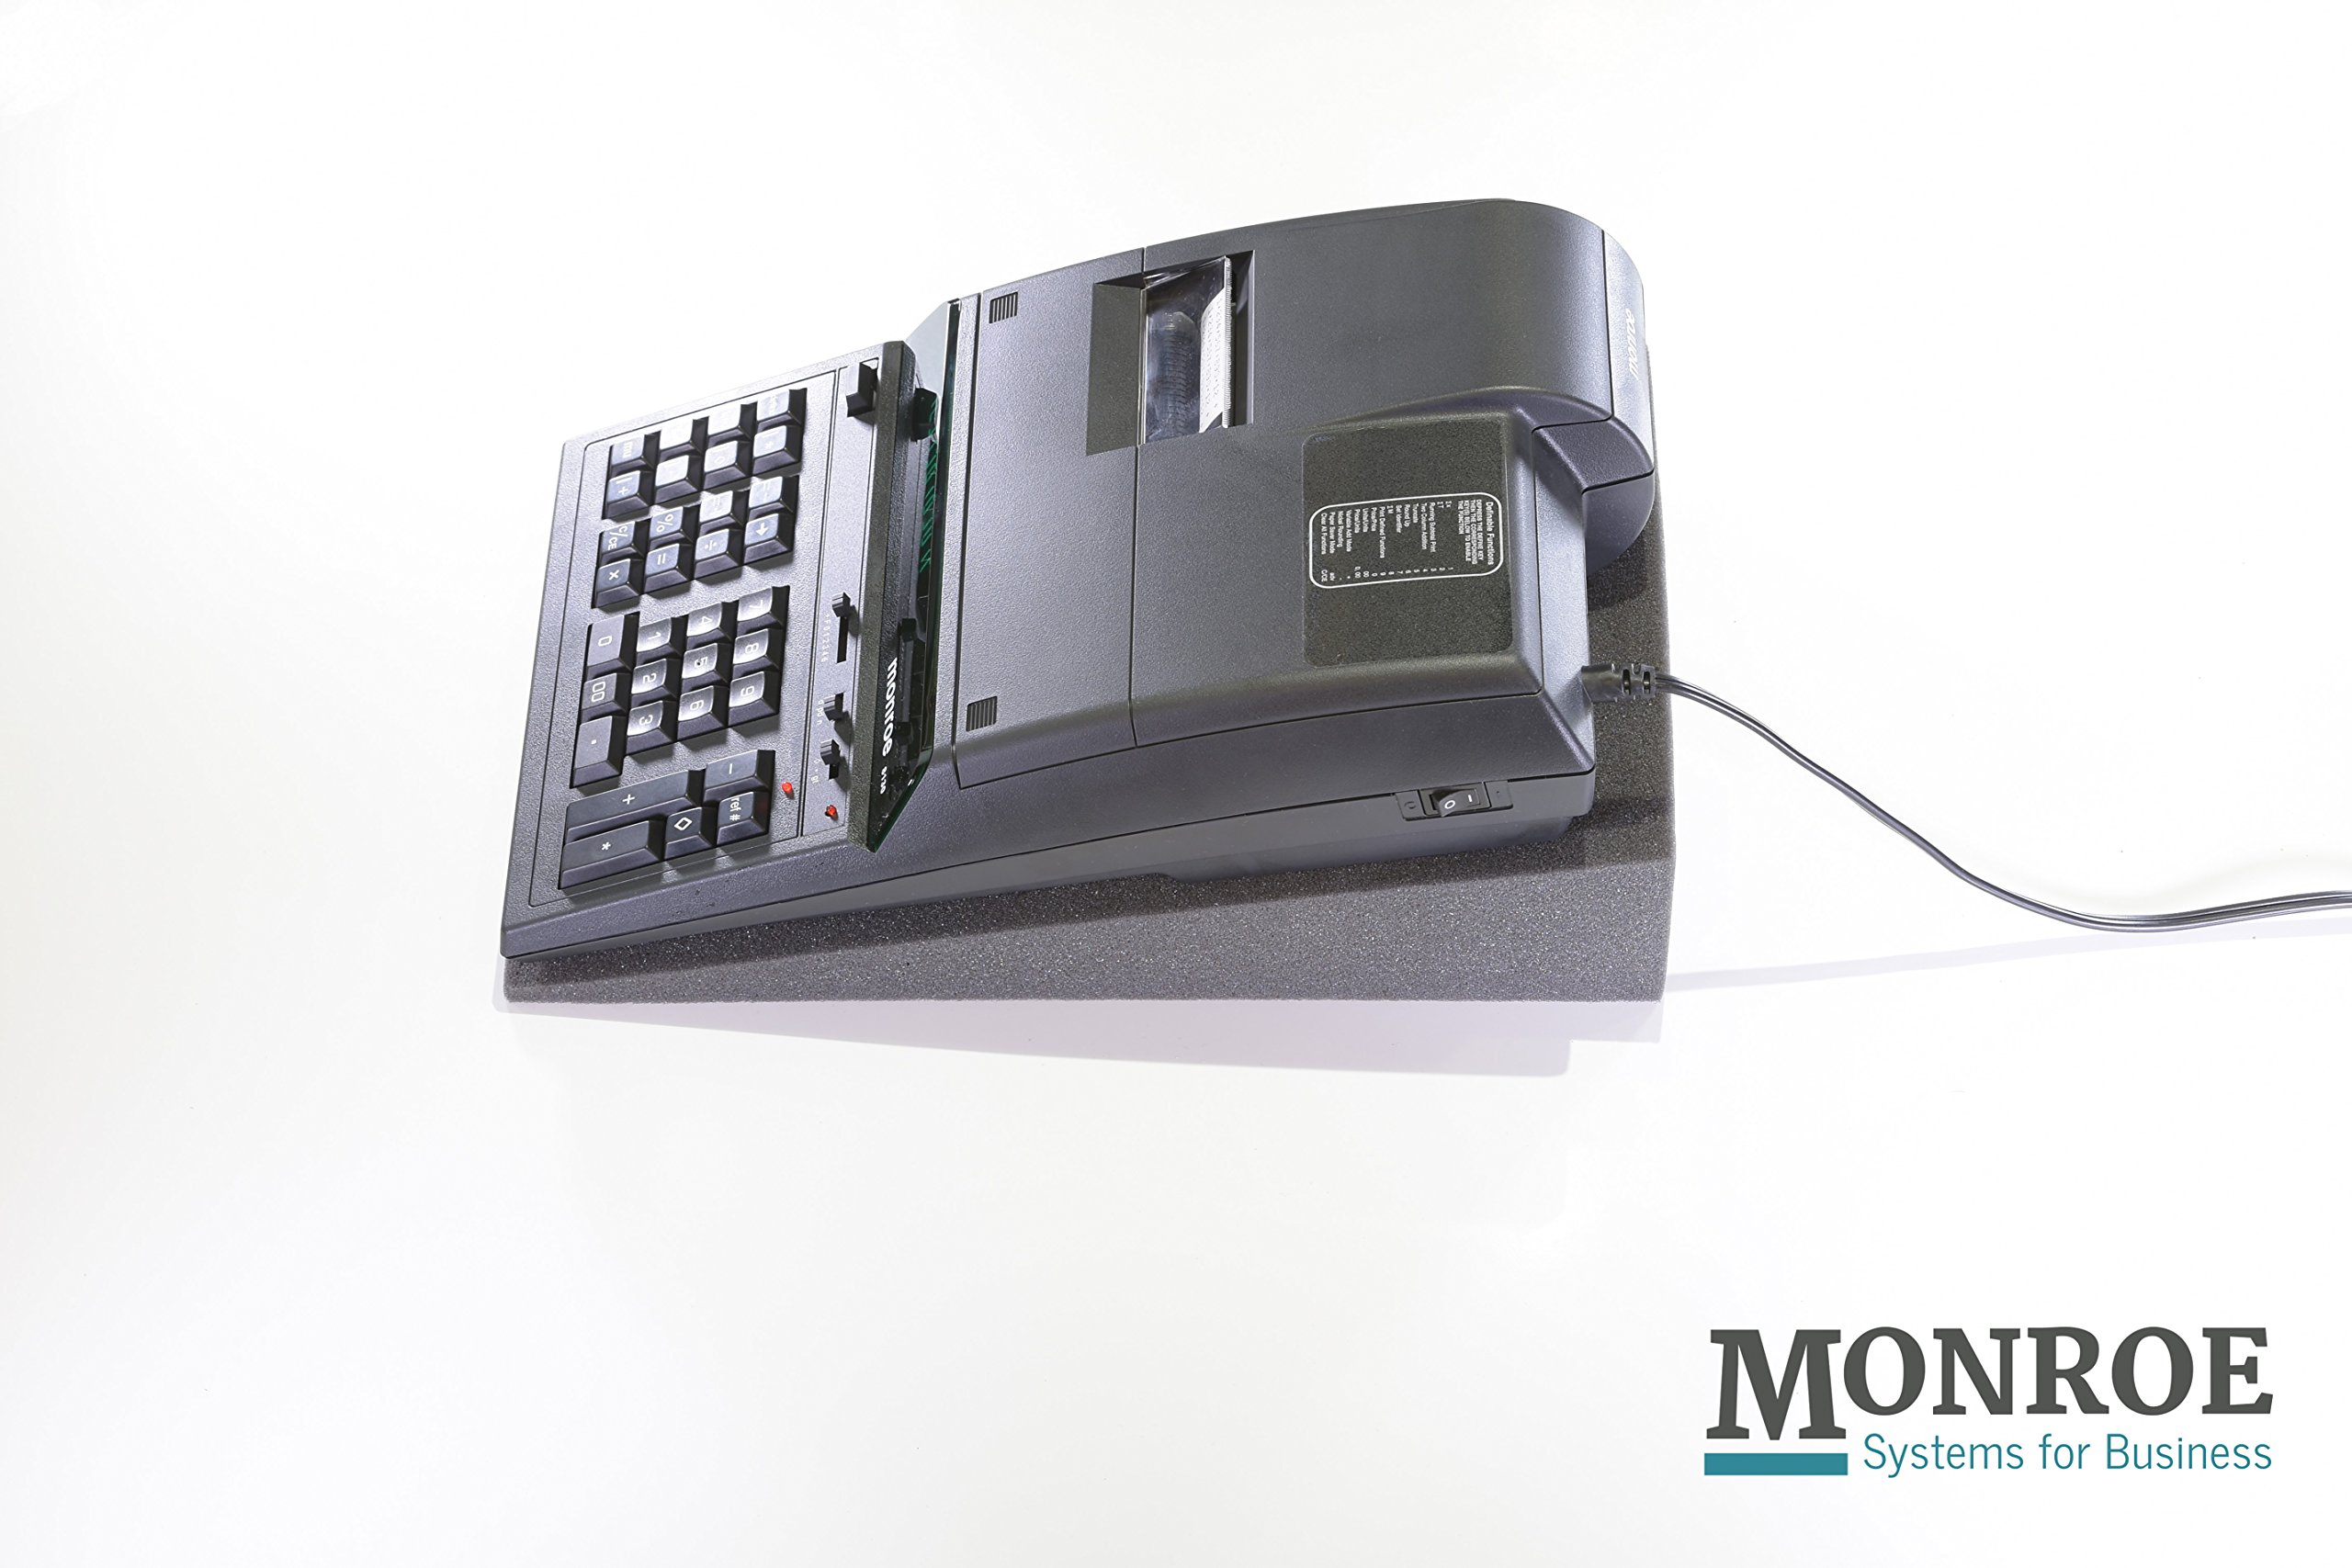 (1) Monroe 8130X 12-Digit Print/Display Professional Heavy-Duty Calculator in Black with Extended Life Calculator Body by MONROE SYSTEMS FOR BUSINESS